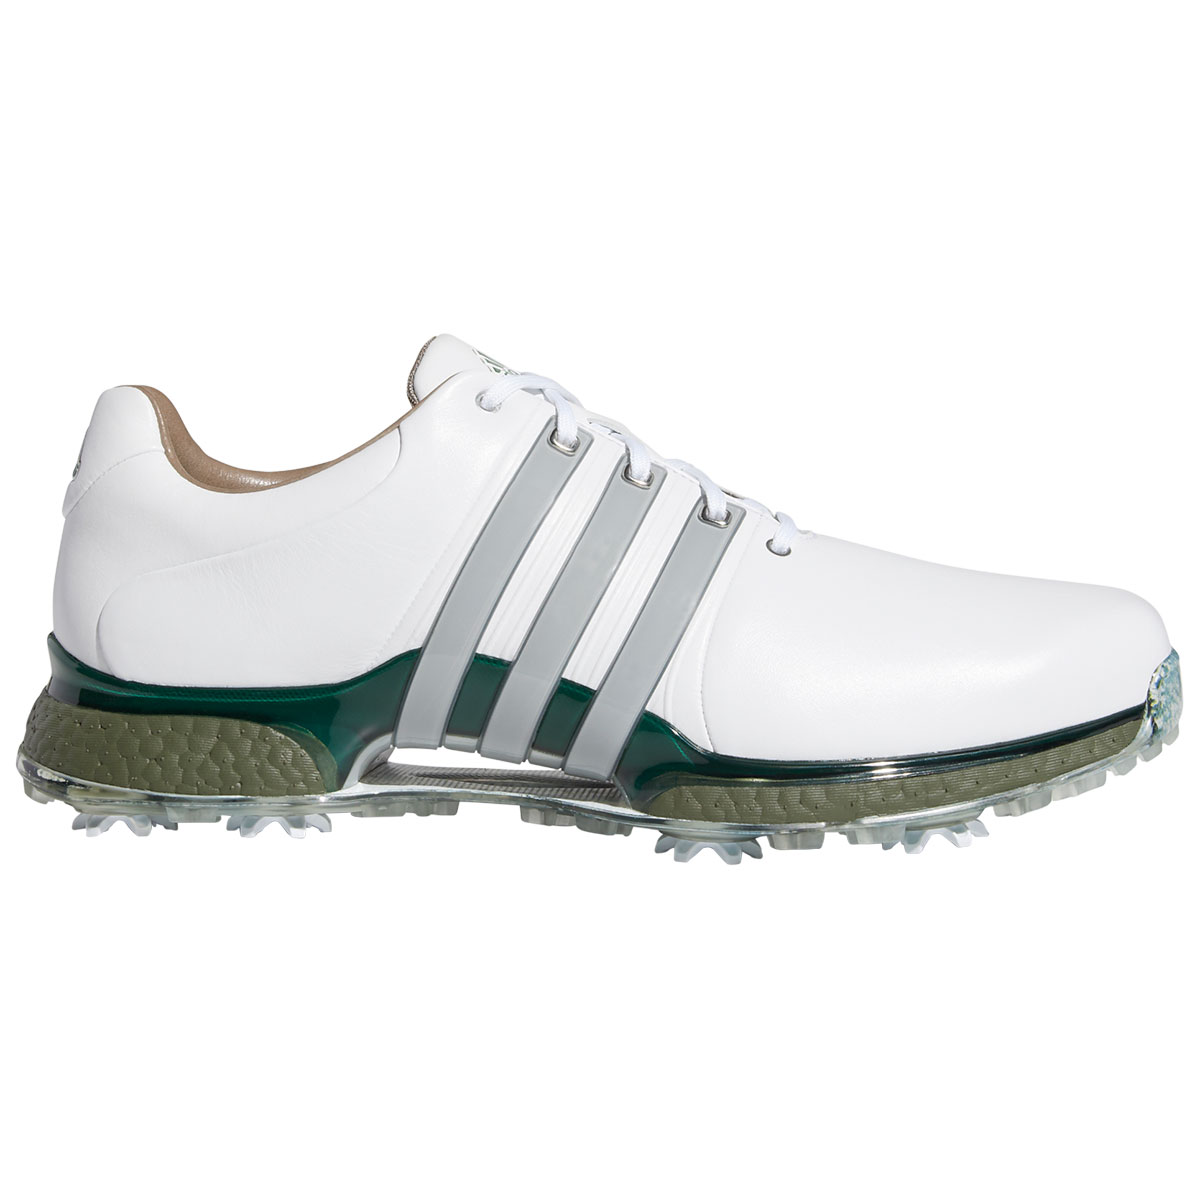 Eso Hombre rico rima  adidas Golf Tour 360 XT Limited Edition Shoes from american golf